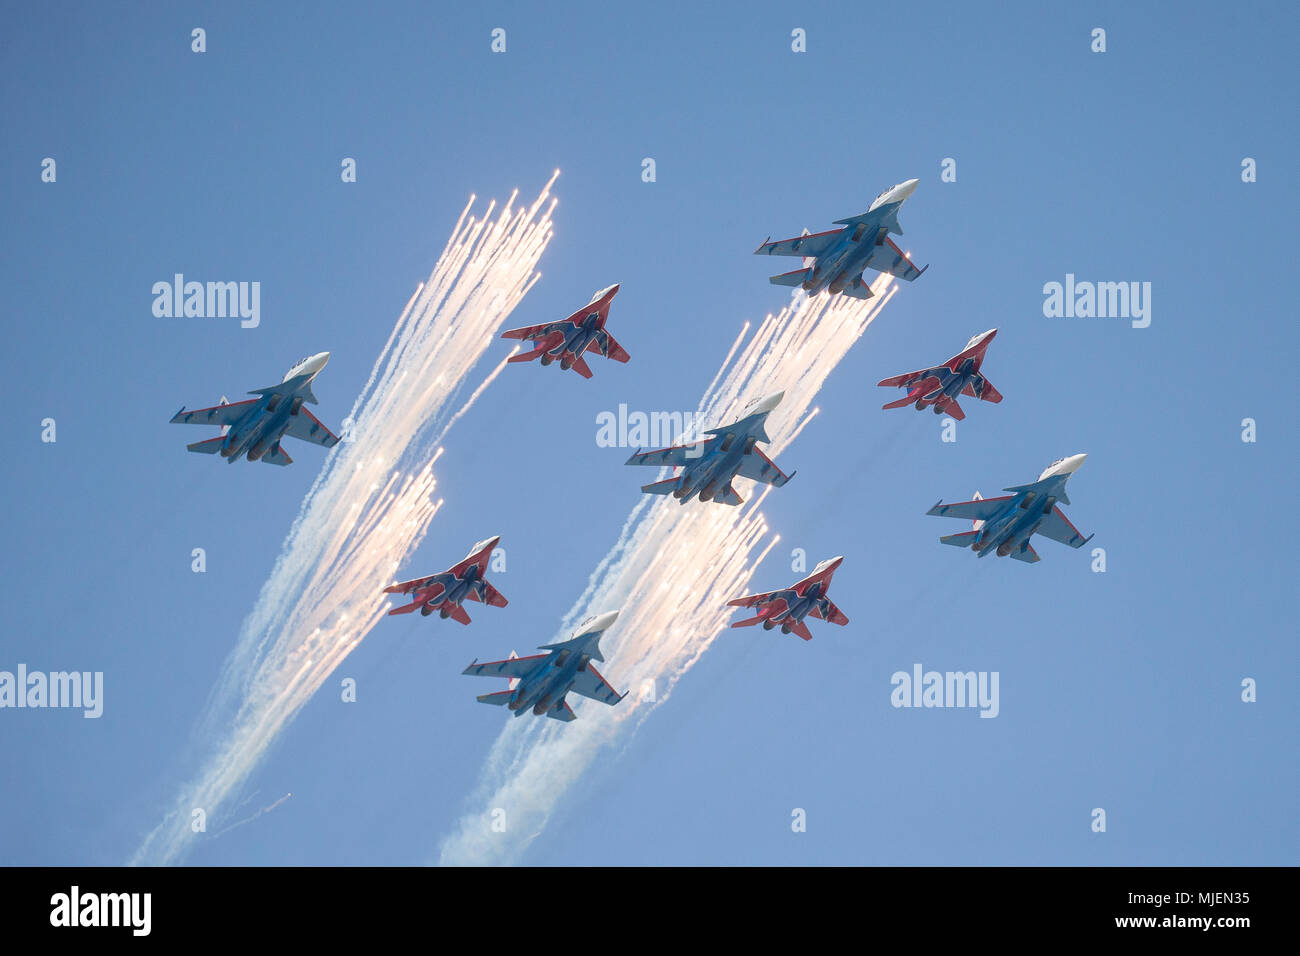 Moscow, Russia. 4th May, 2018. Russian Air Force multi-purpose fighters Su-30SM of the pilot group Russkiye Vityazi (Russian Knights) and MiG-29 of the Strizhi (Swifts) aerobatic team fly in formation during a rehearsal of the upcoming Victory Day air show marking the 73rd anniversary of the victory over Nazi Germany in the 1941-45 Great Patriotic War, the Eastern Front of World War II. Credit: Victor Vytolskiy/Alamy Live News Stock Photo